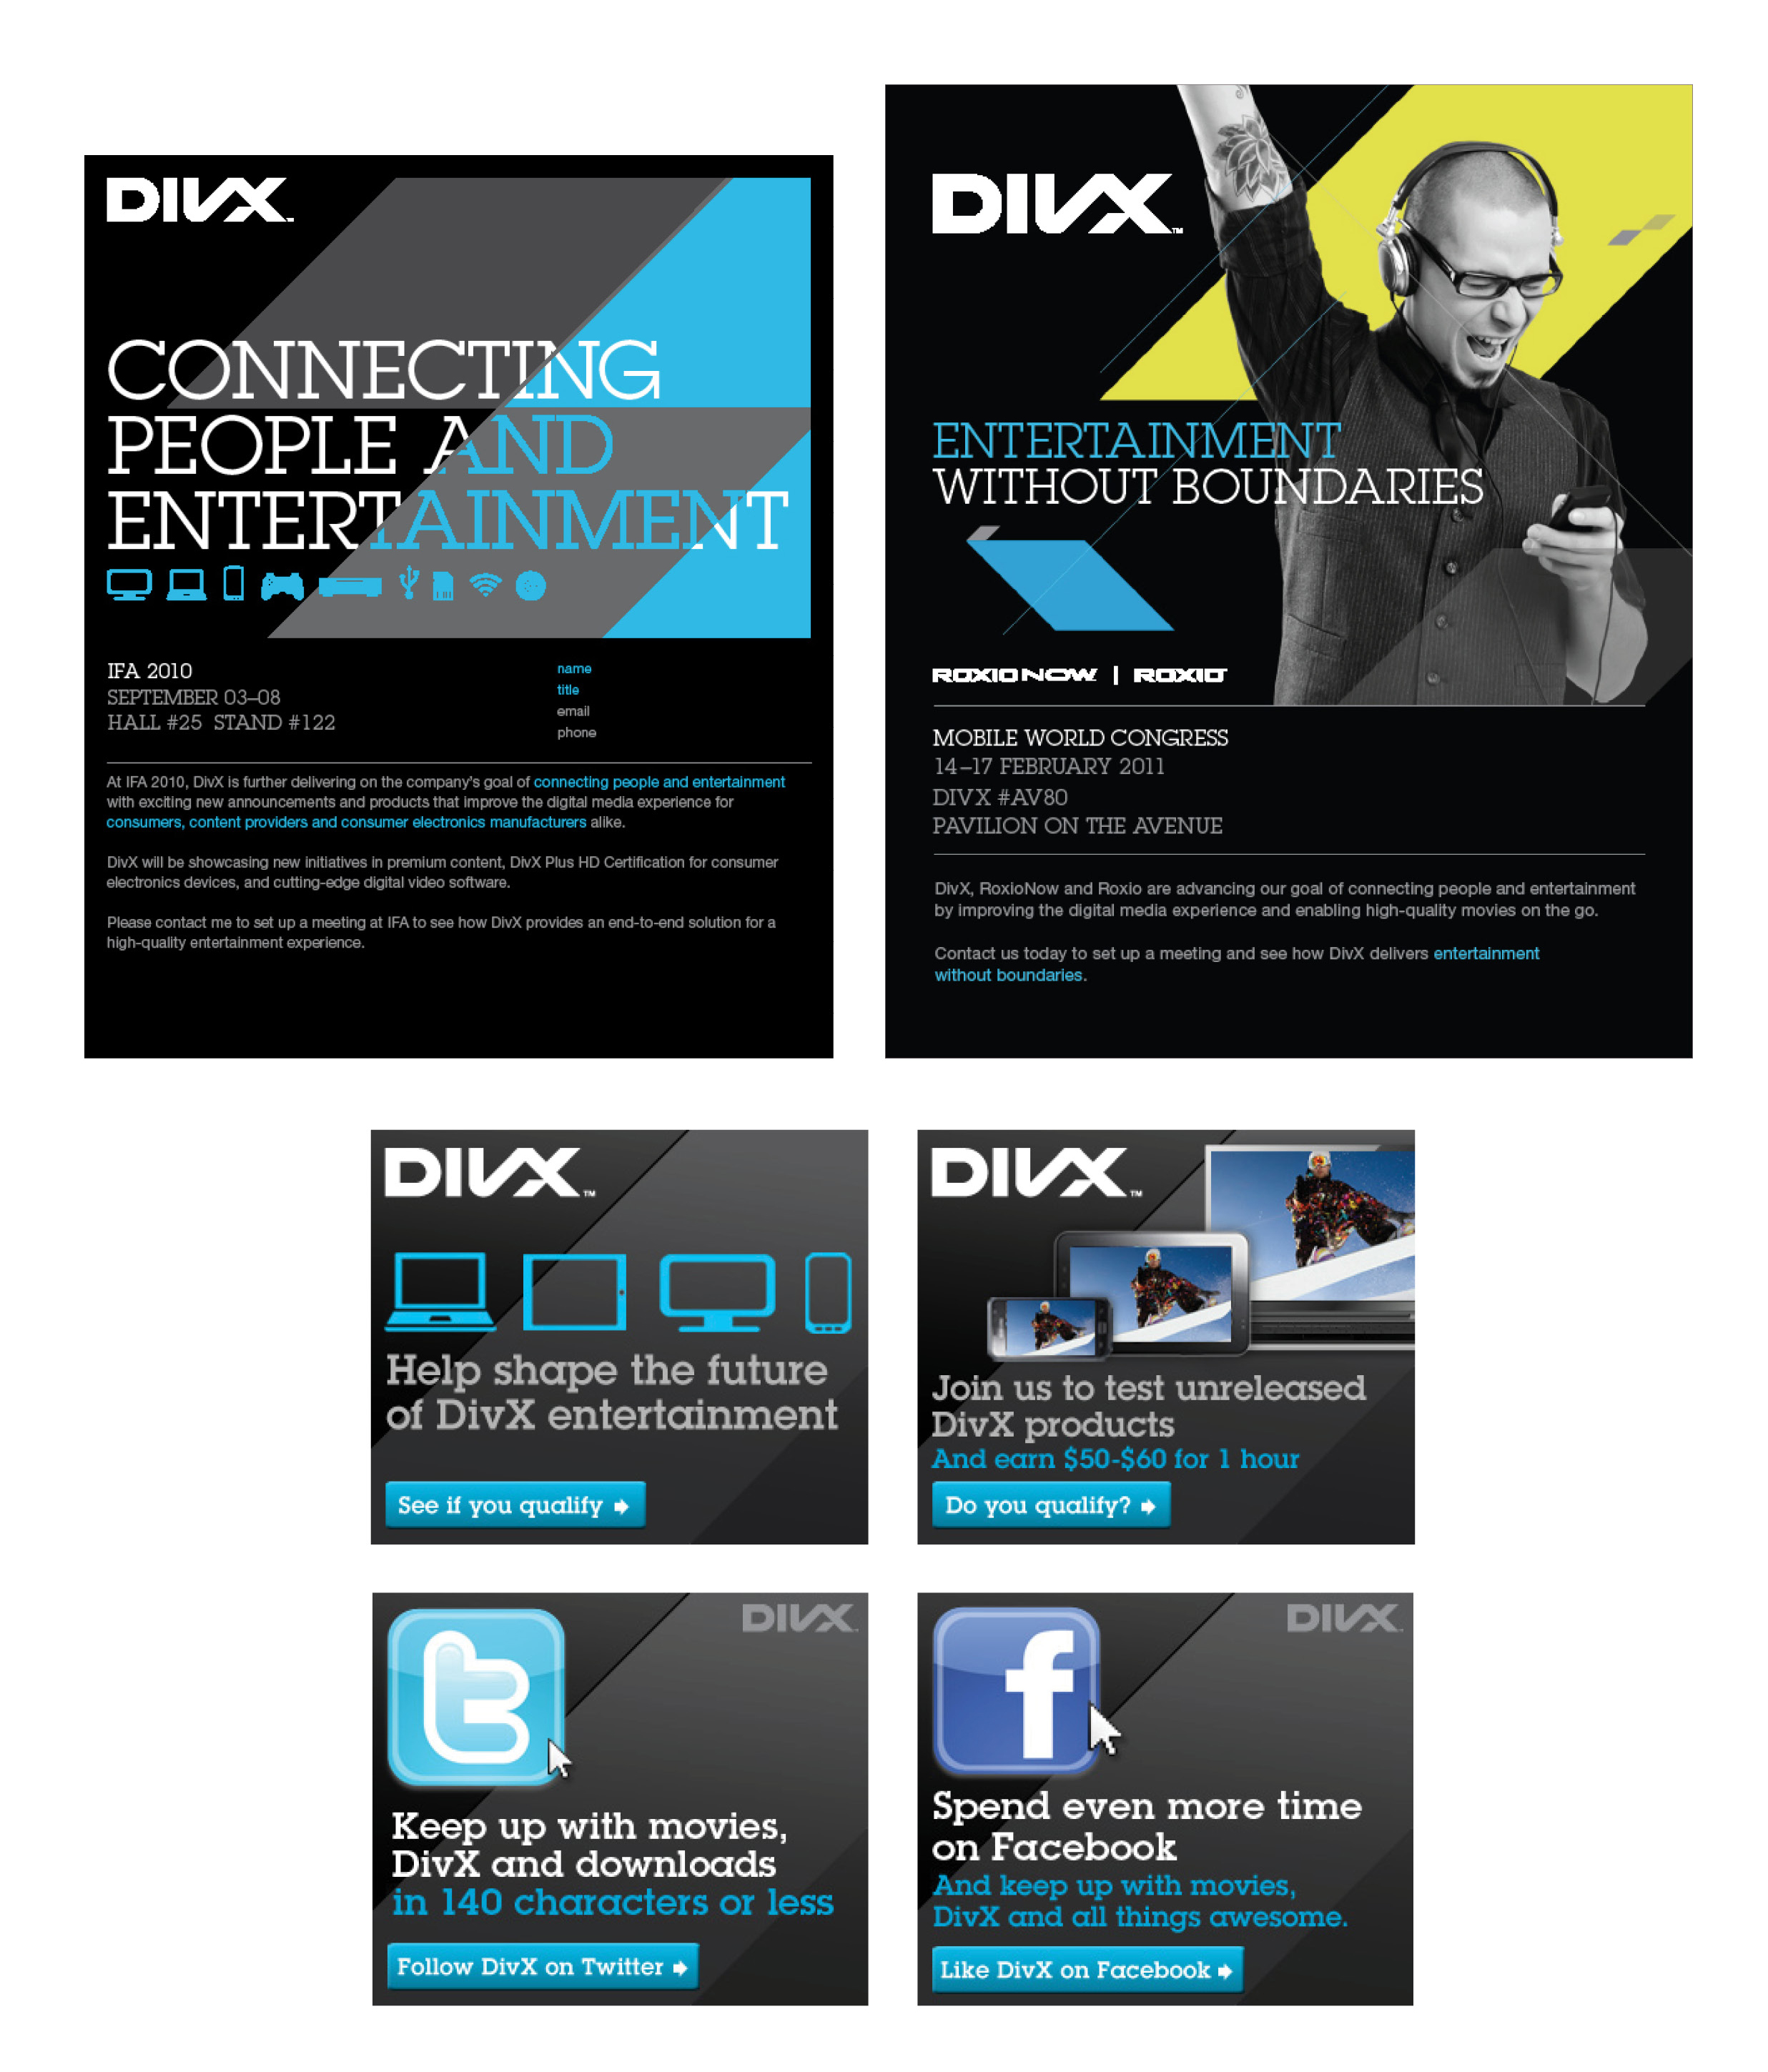 DivX : emails, invitations, advertisements